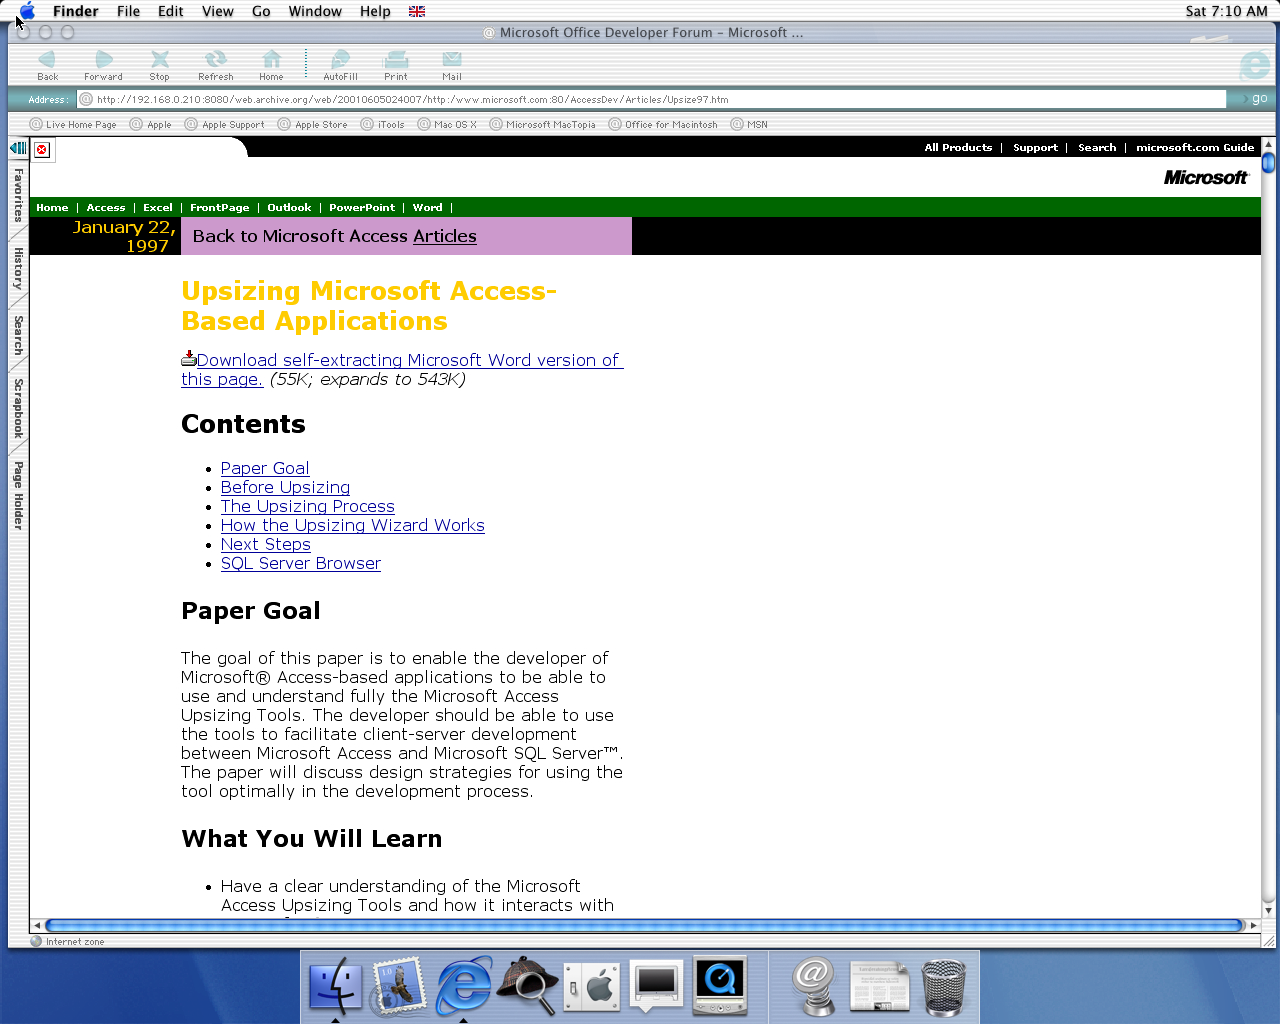 OS X 10.0 PPC with Microsoft Internet Explorer 5.1 for Mac Preview displaying a page from Microsoft.com archived at June 05, 2001 at 02:40:07